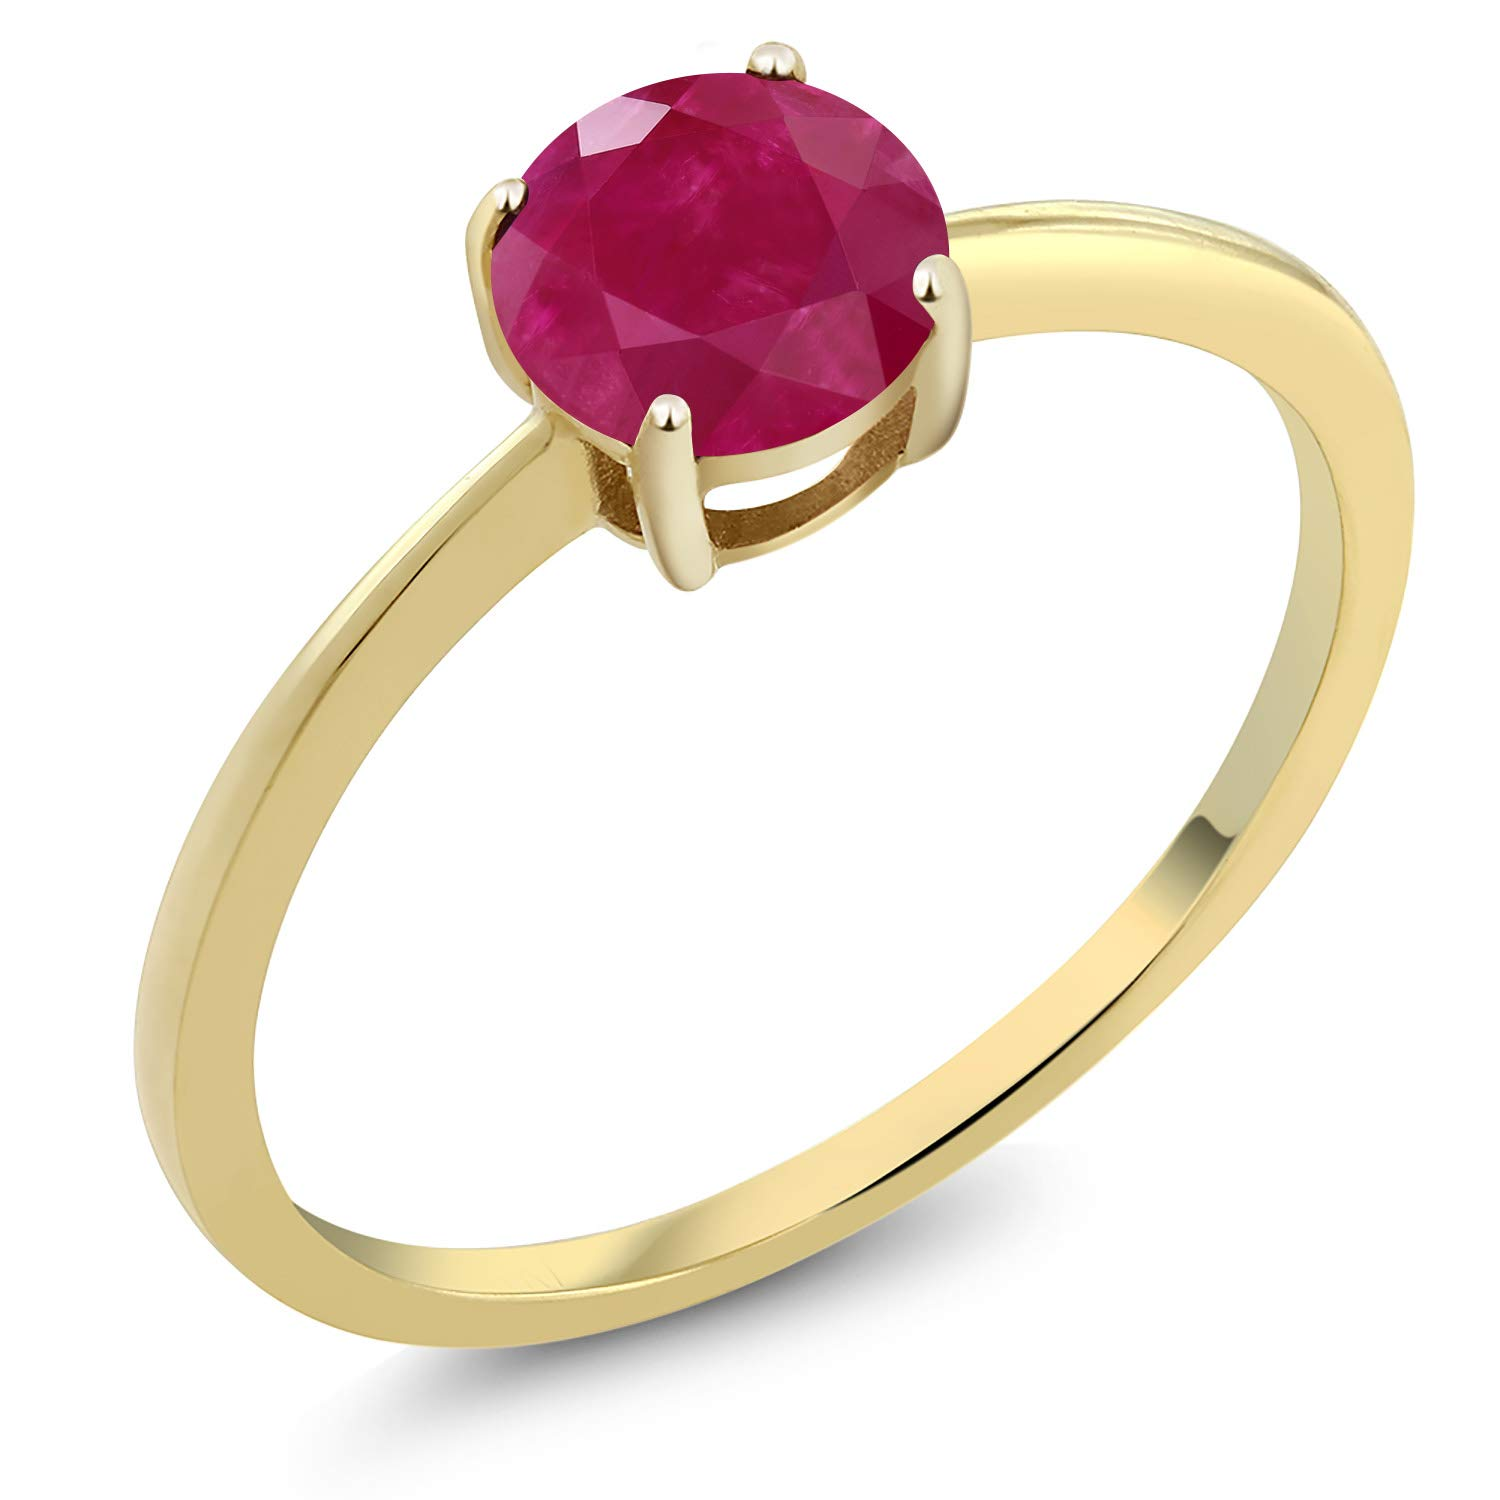 Gem Stone King 1.00 Ct Round Red Ruby 10K Yellow Gold Solitaire Engagement Ring (Available 5,6,7,8,9)